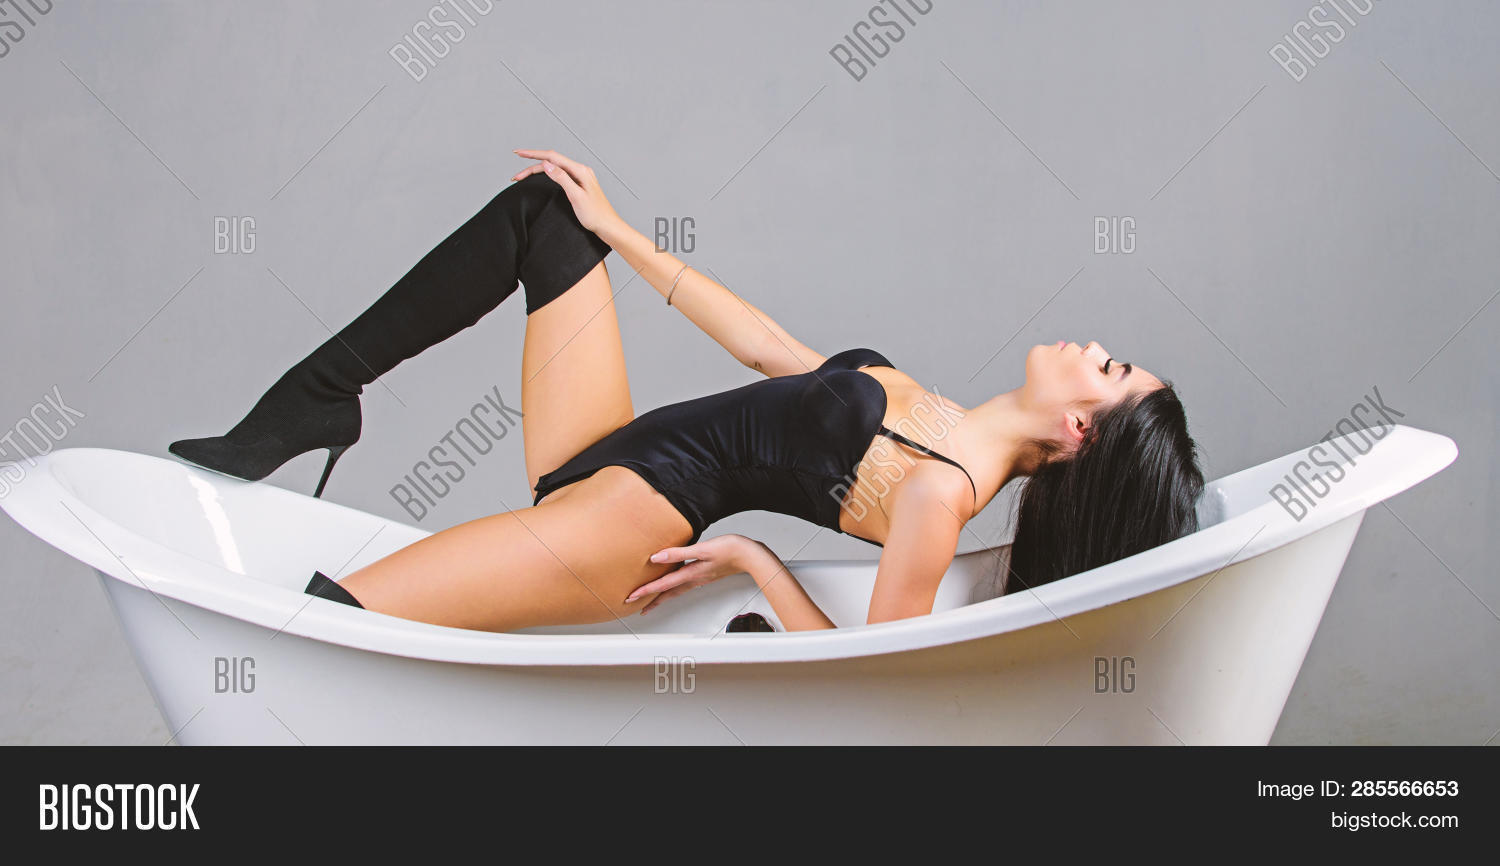 Girl Relaxed Sexy Pose Lean On Bathtub. Woman Sexy Girl Long Legs Wear Tight Bustier Bodysuit And Hi